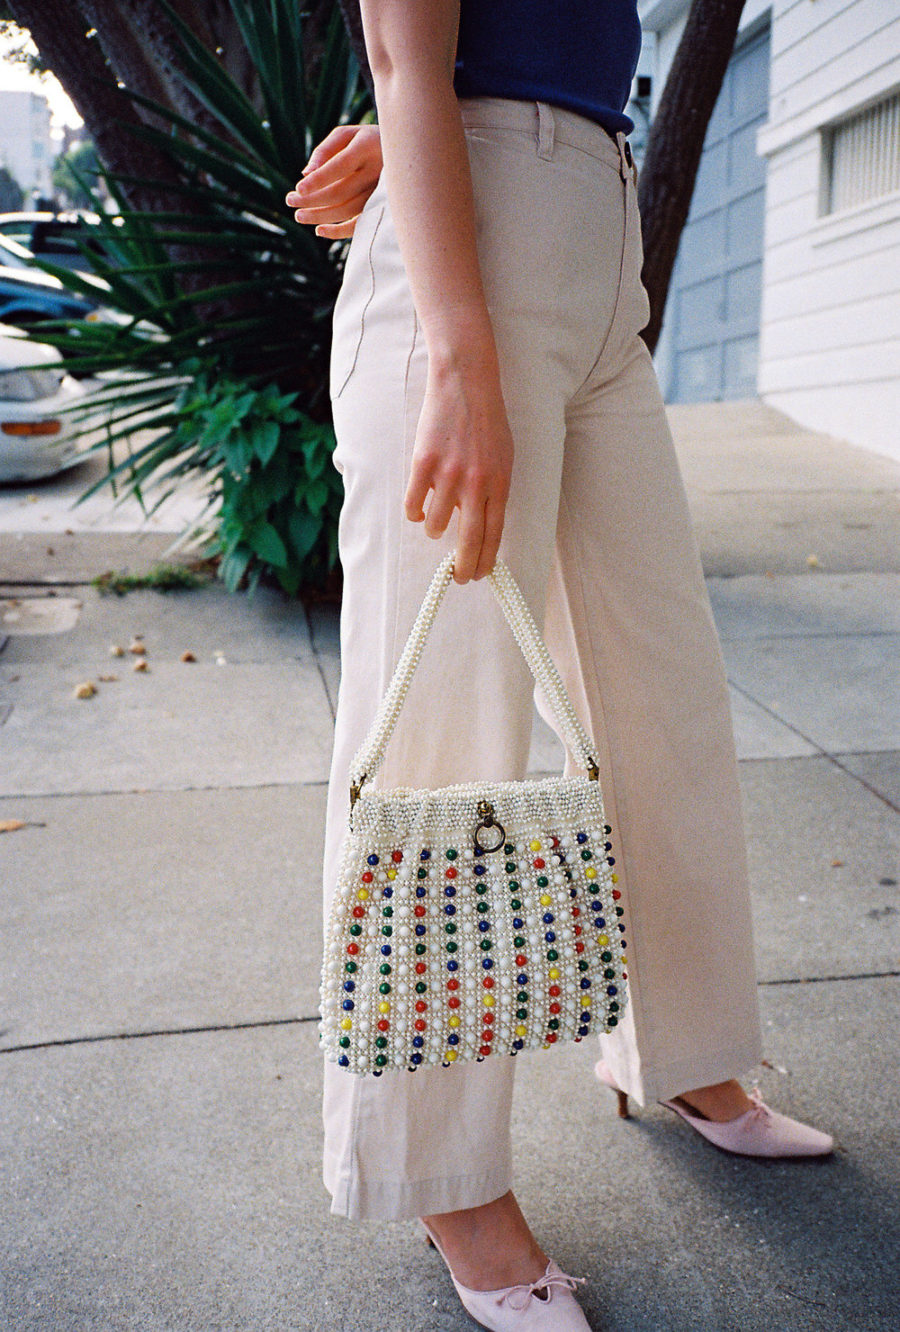 Summer Handbag Styles to Elevate Your Look - beaded bag, top handbag trends // Notjessfashion.com